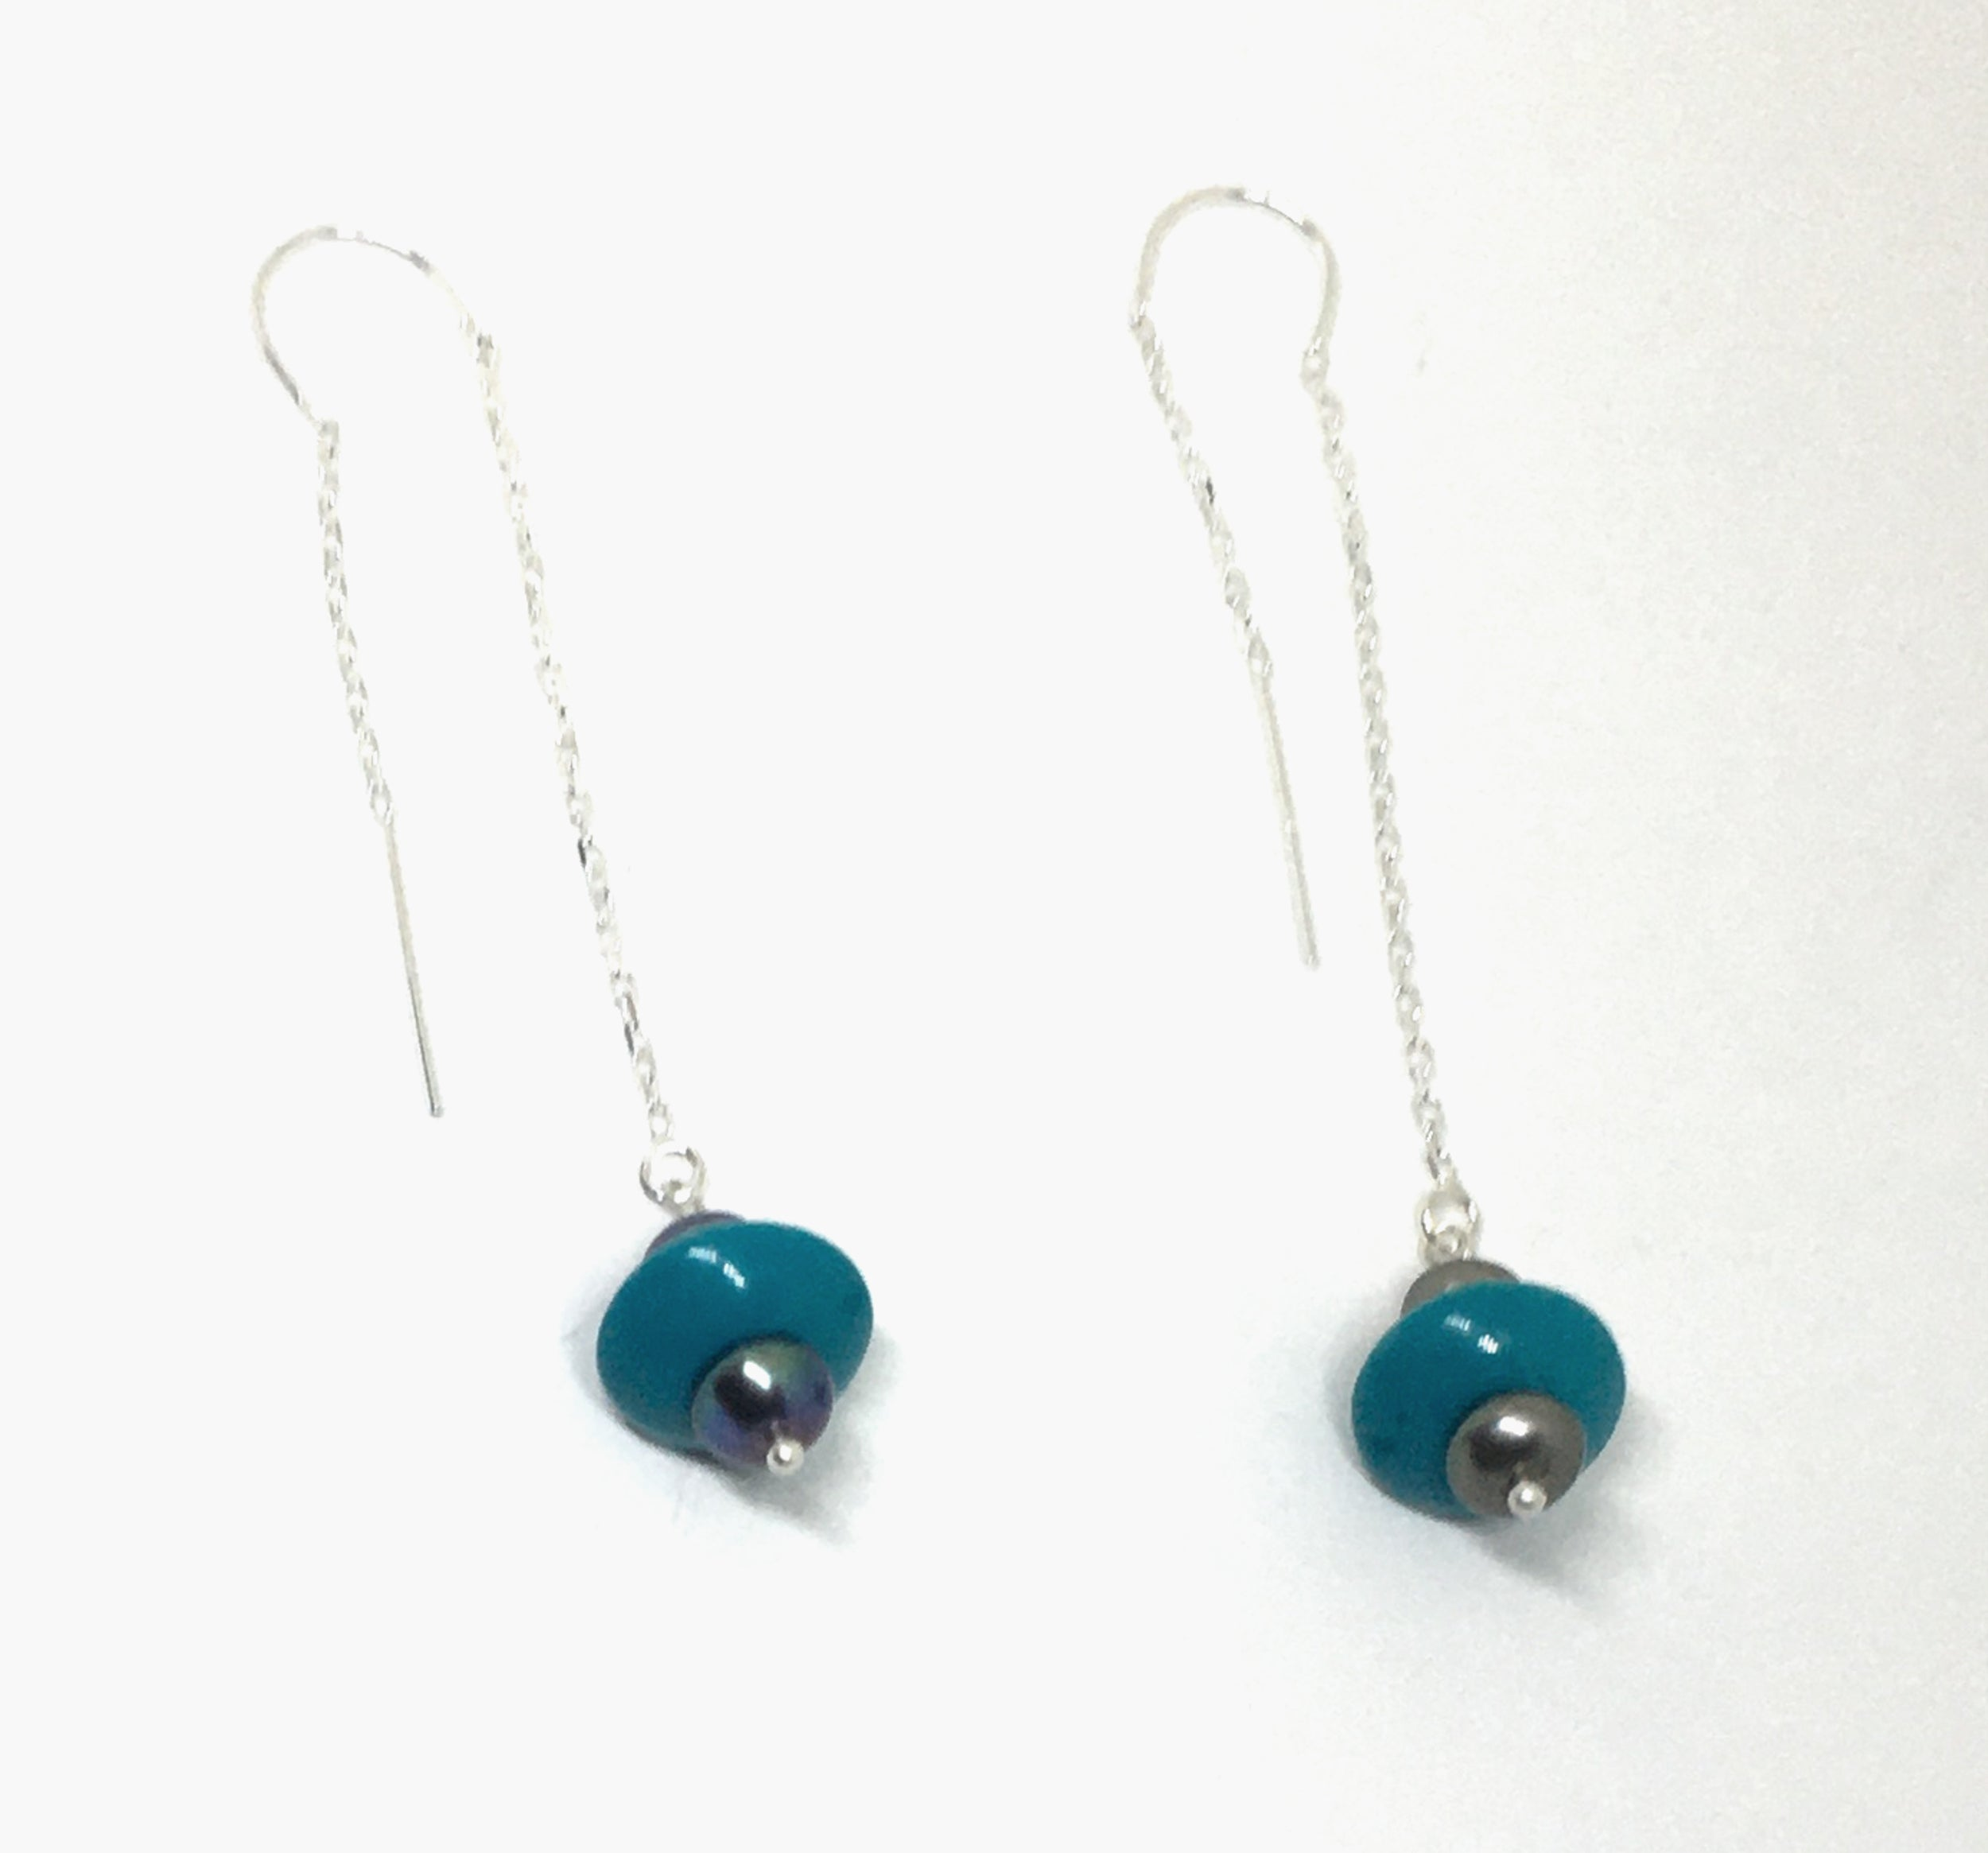 Turquoise and dove gray threader earrings